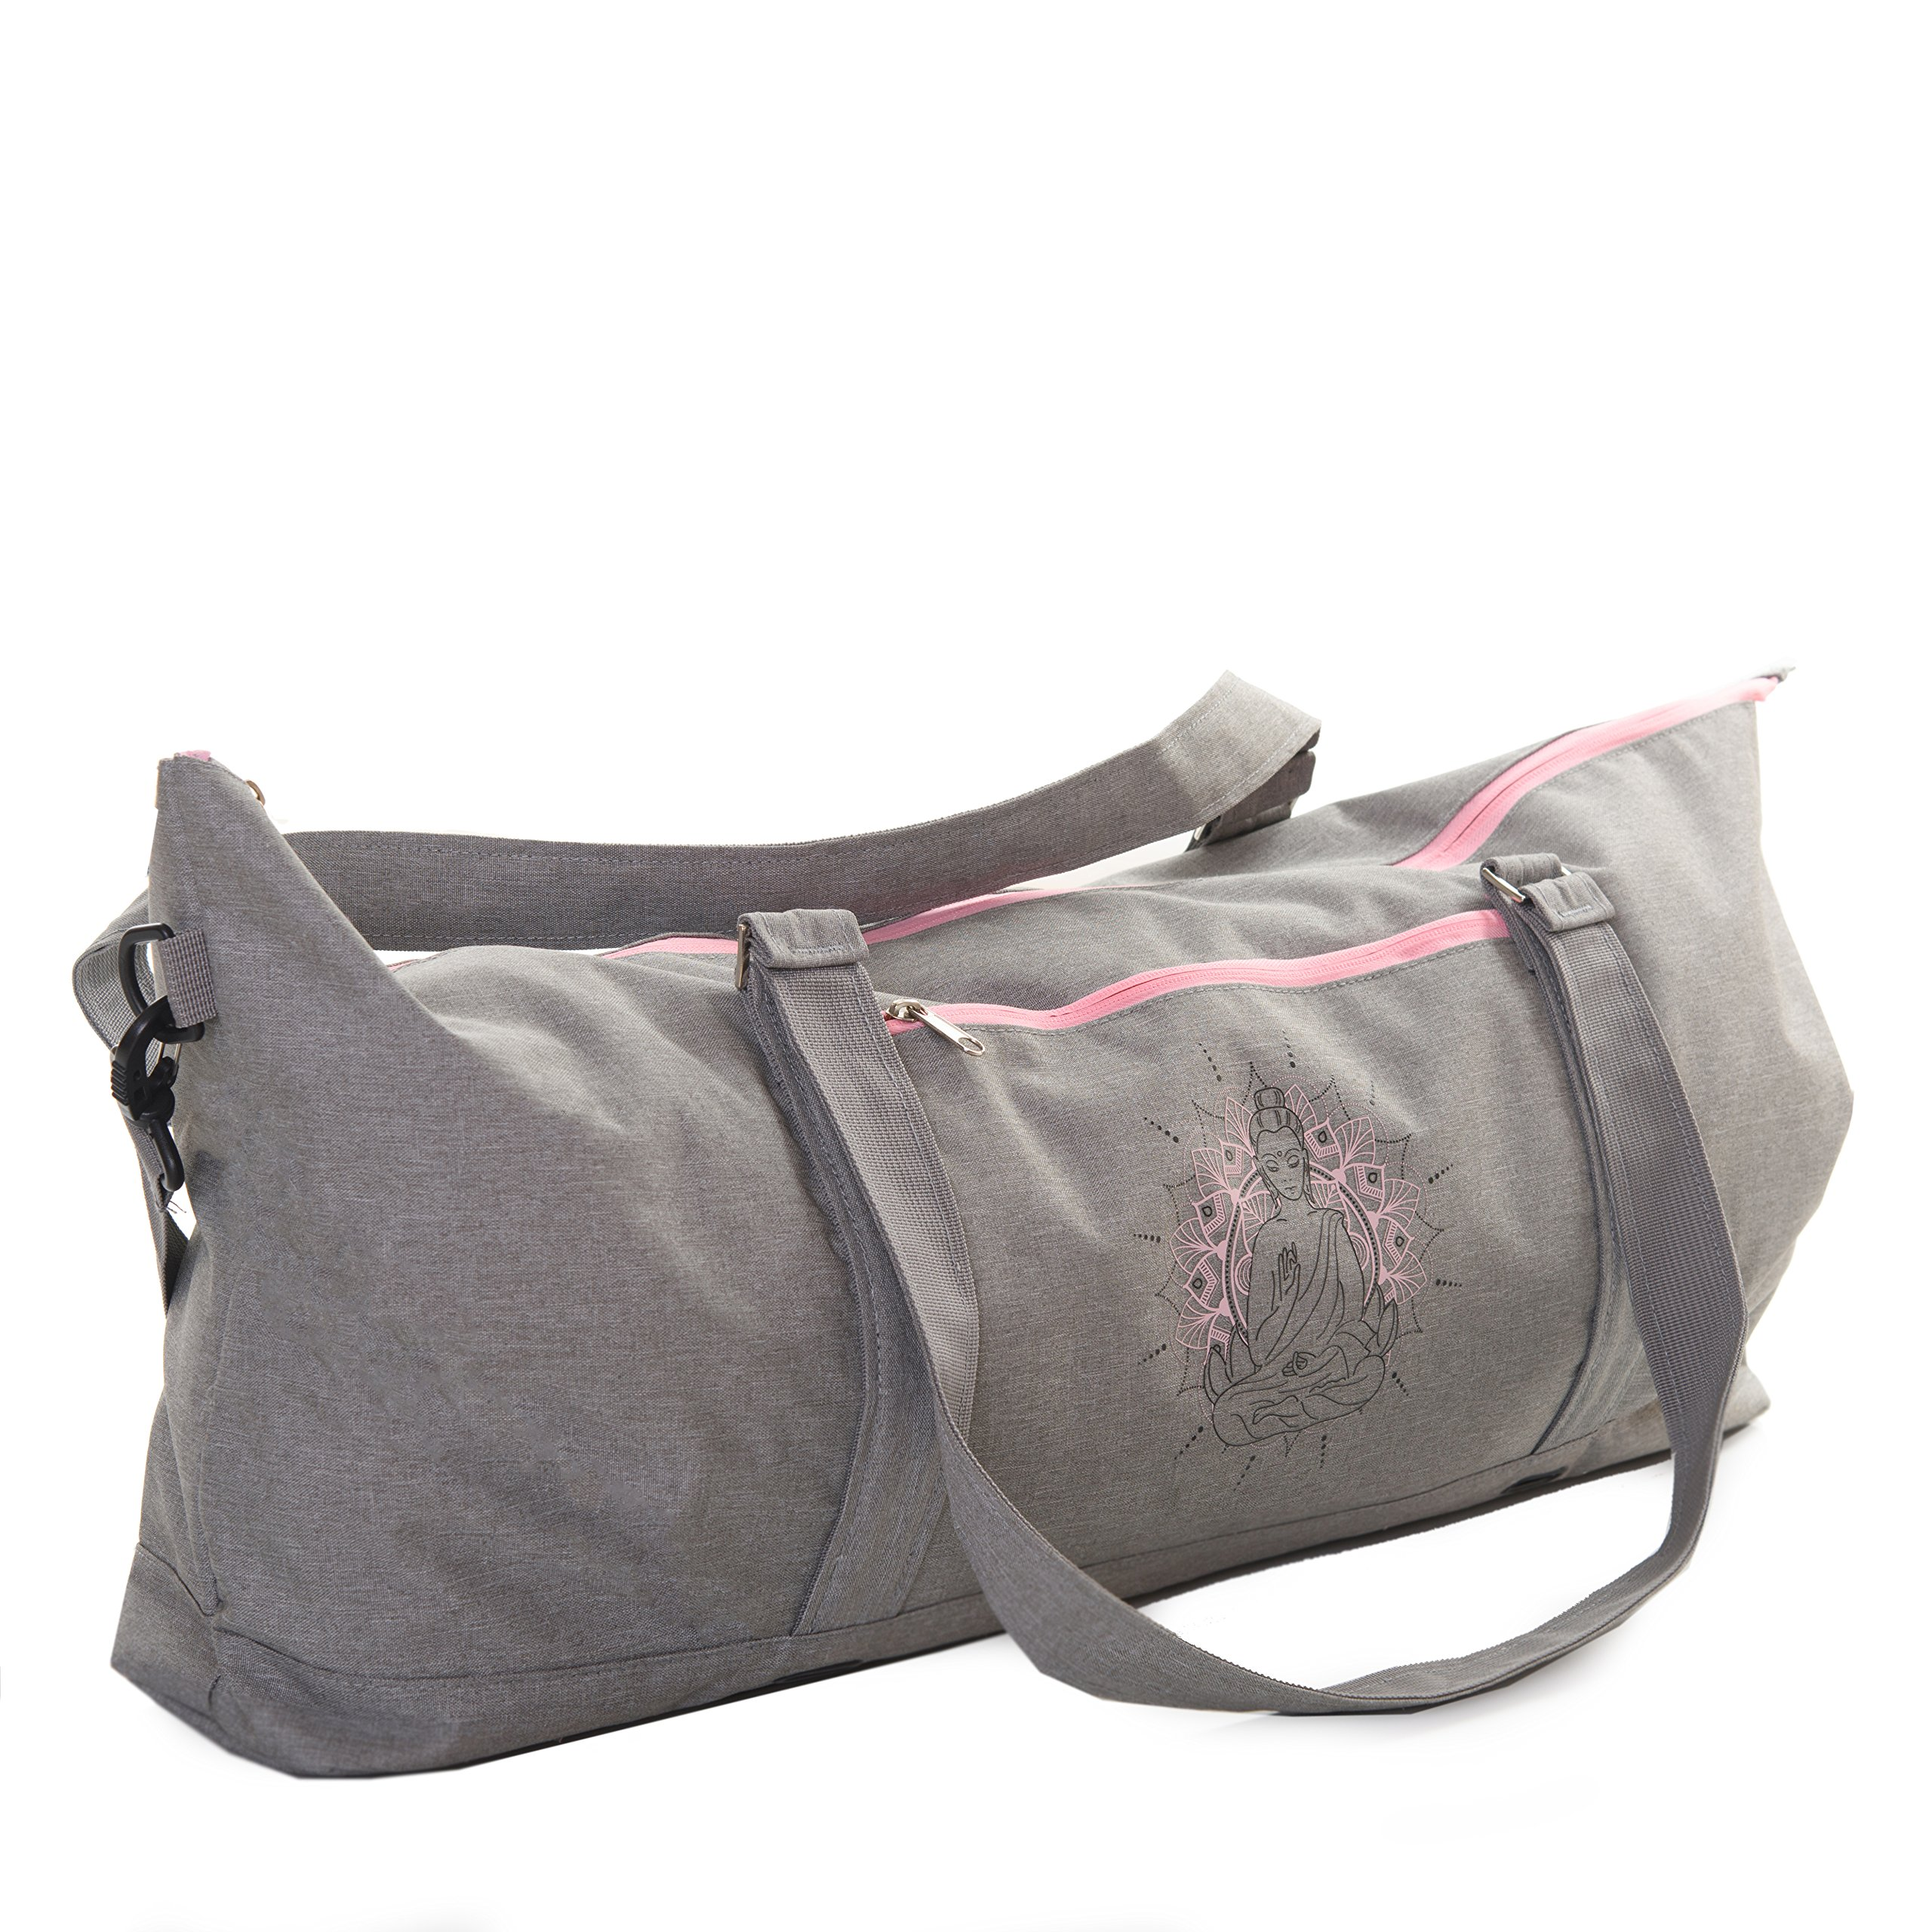 JamPa Yoga Mat Tote Bag | Full Zipper Closing | Adjustable Strap | Many Compartments | Easy to Carry | Pro Mats Will Not Fit